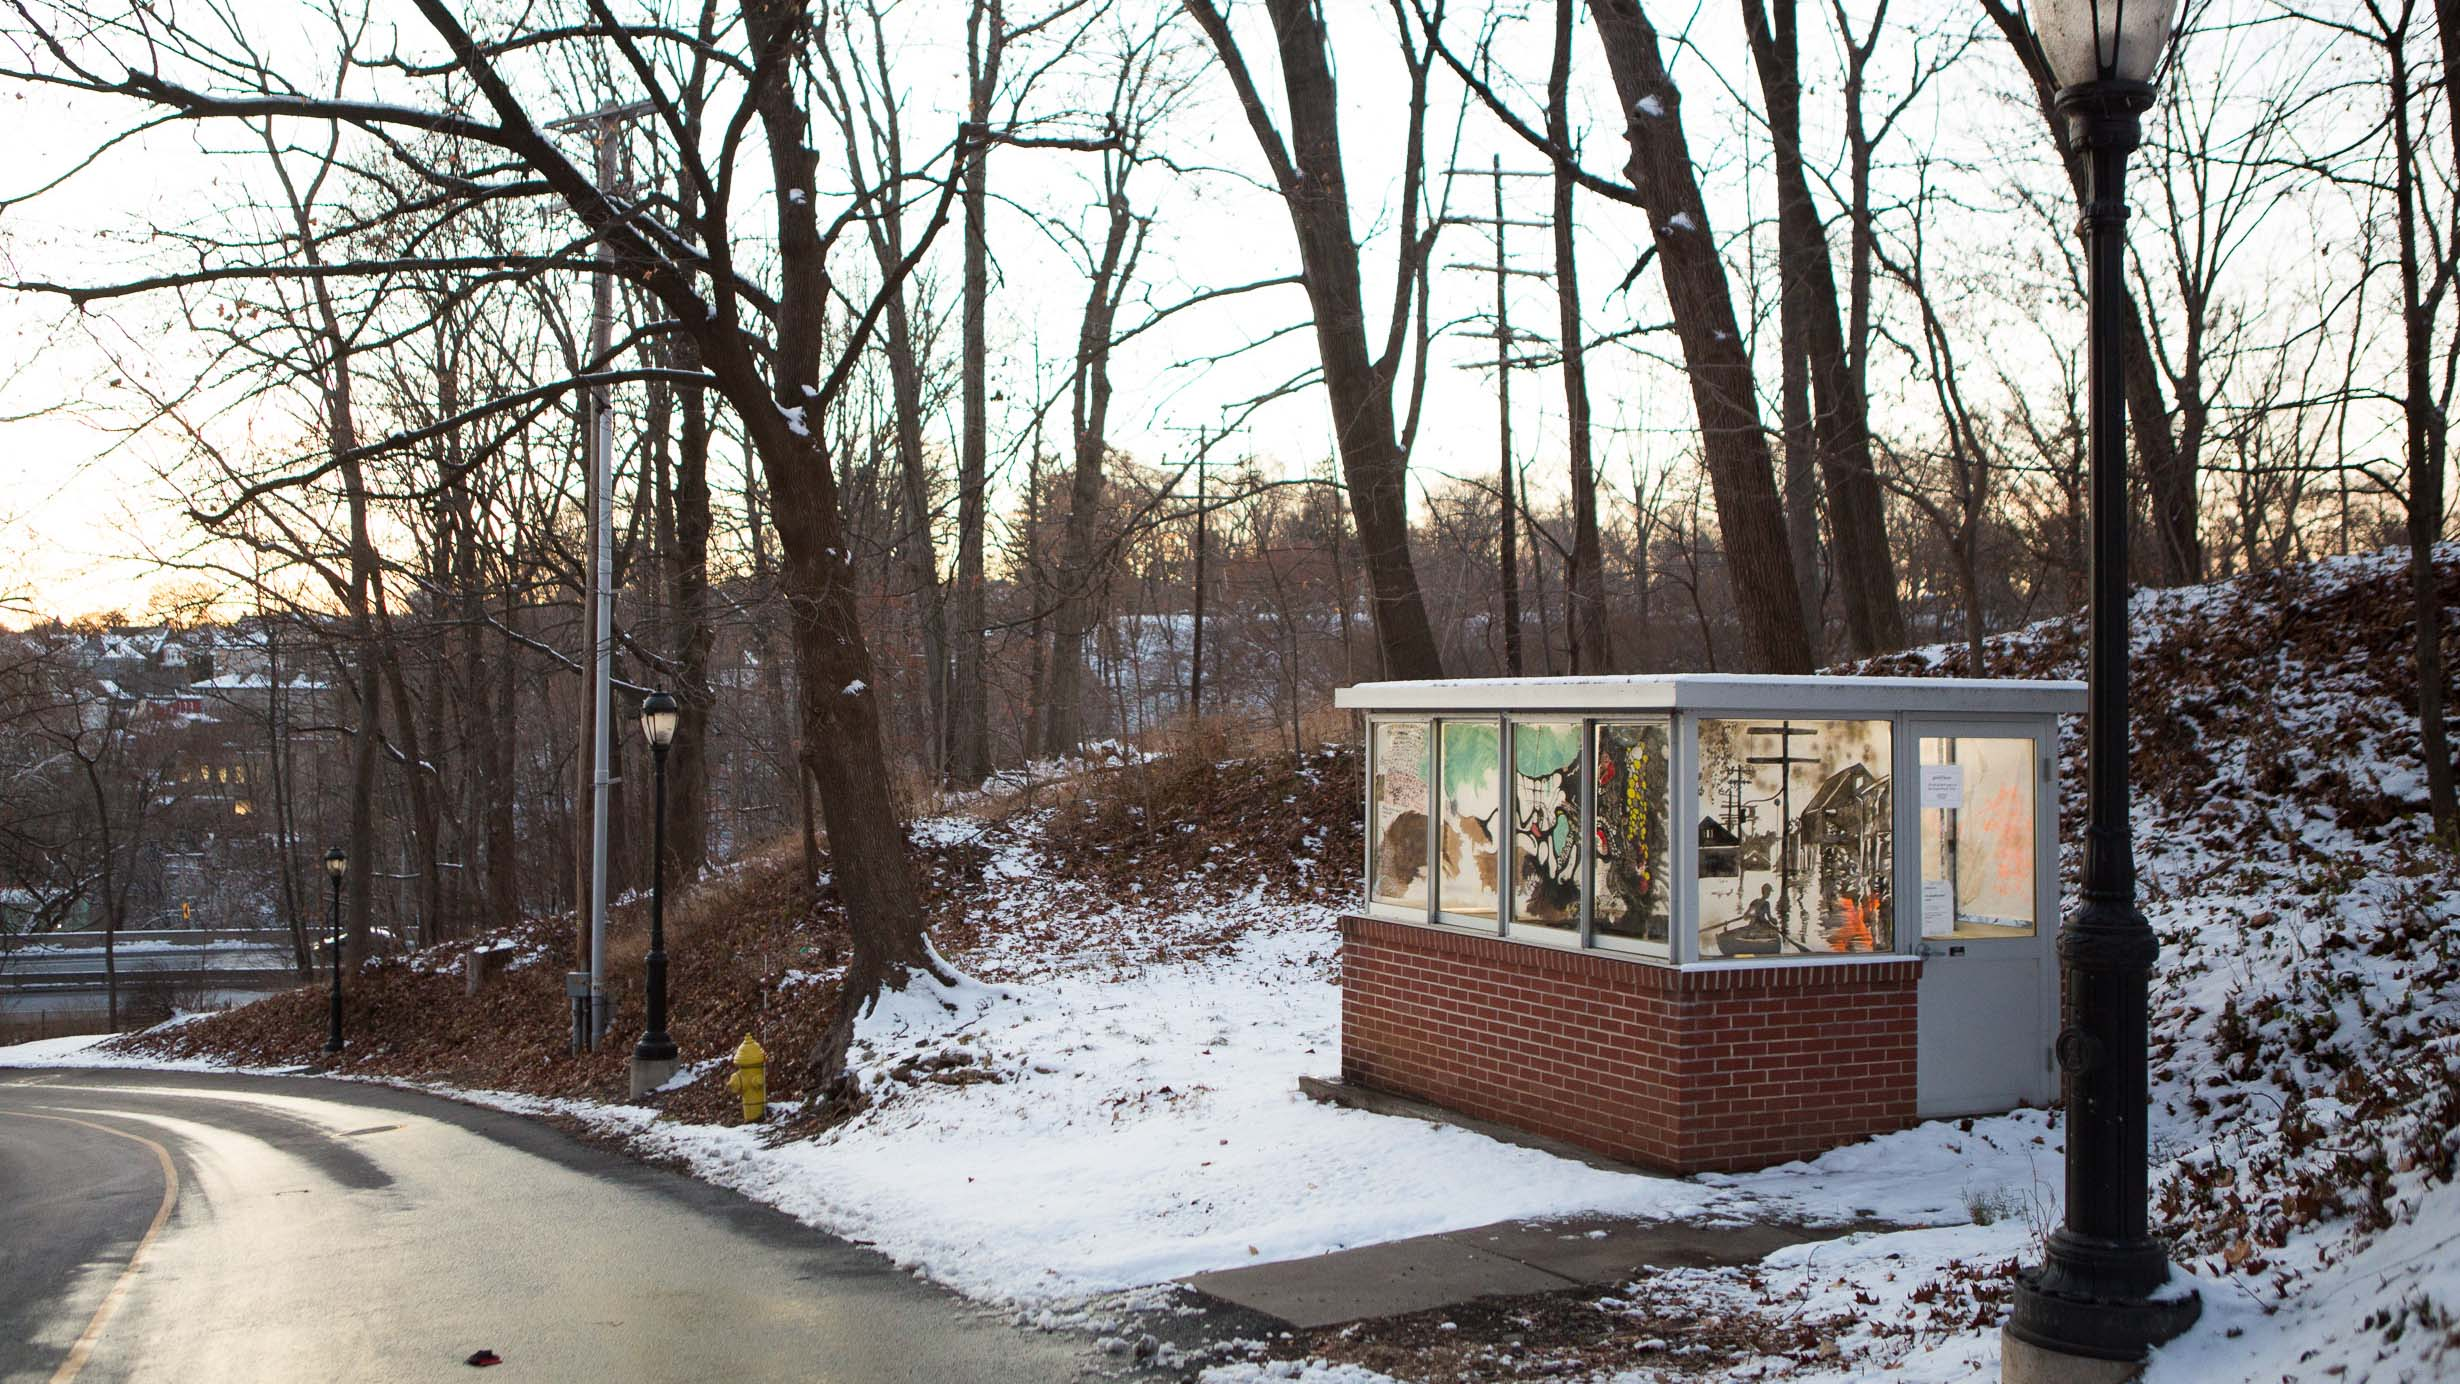 An exterior view of guardehouse, a former security shack turned art exhibit space